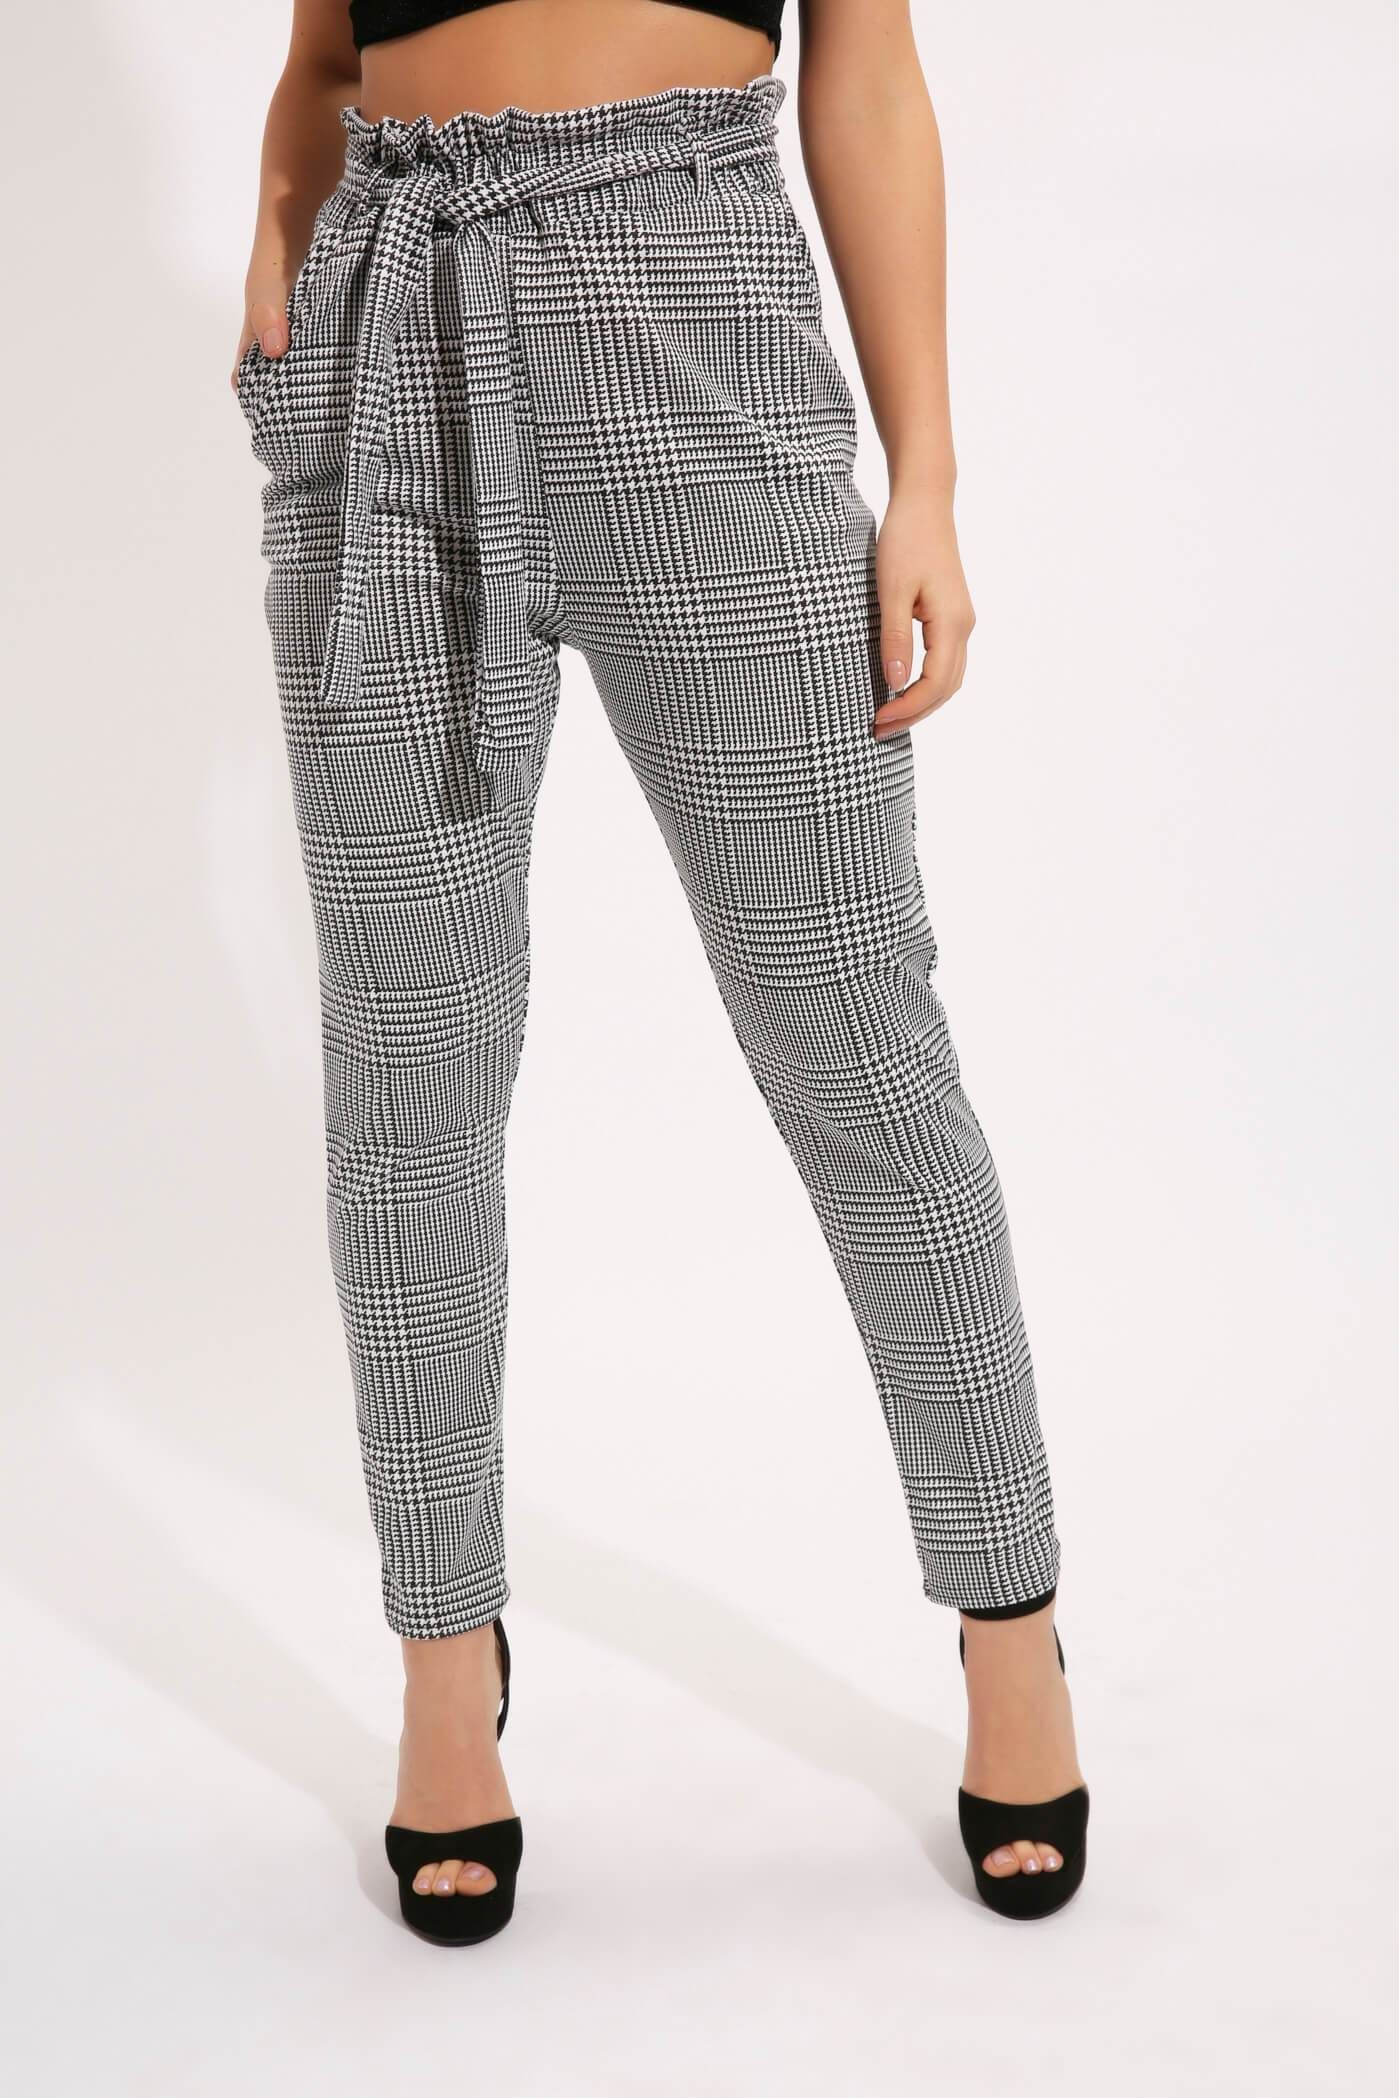 3f9caba052c04a Black/white check tie waist paper bag trousers | Products | Tie ...